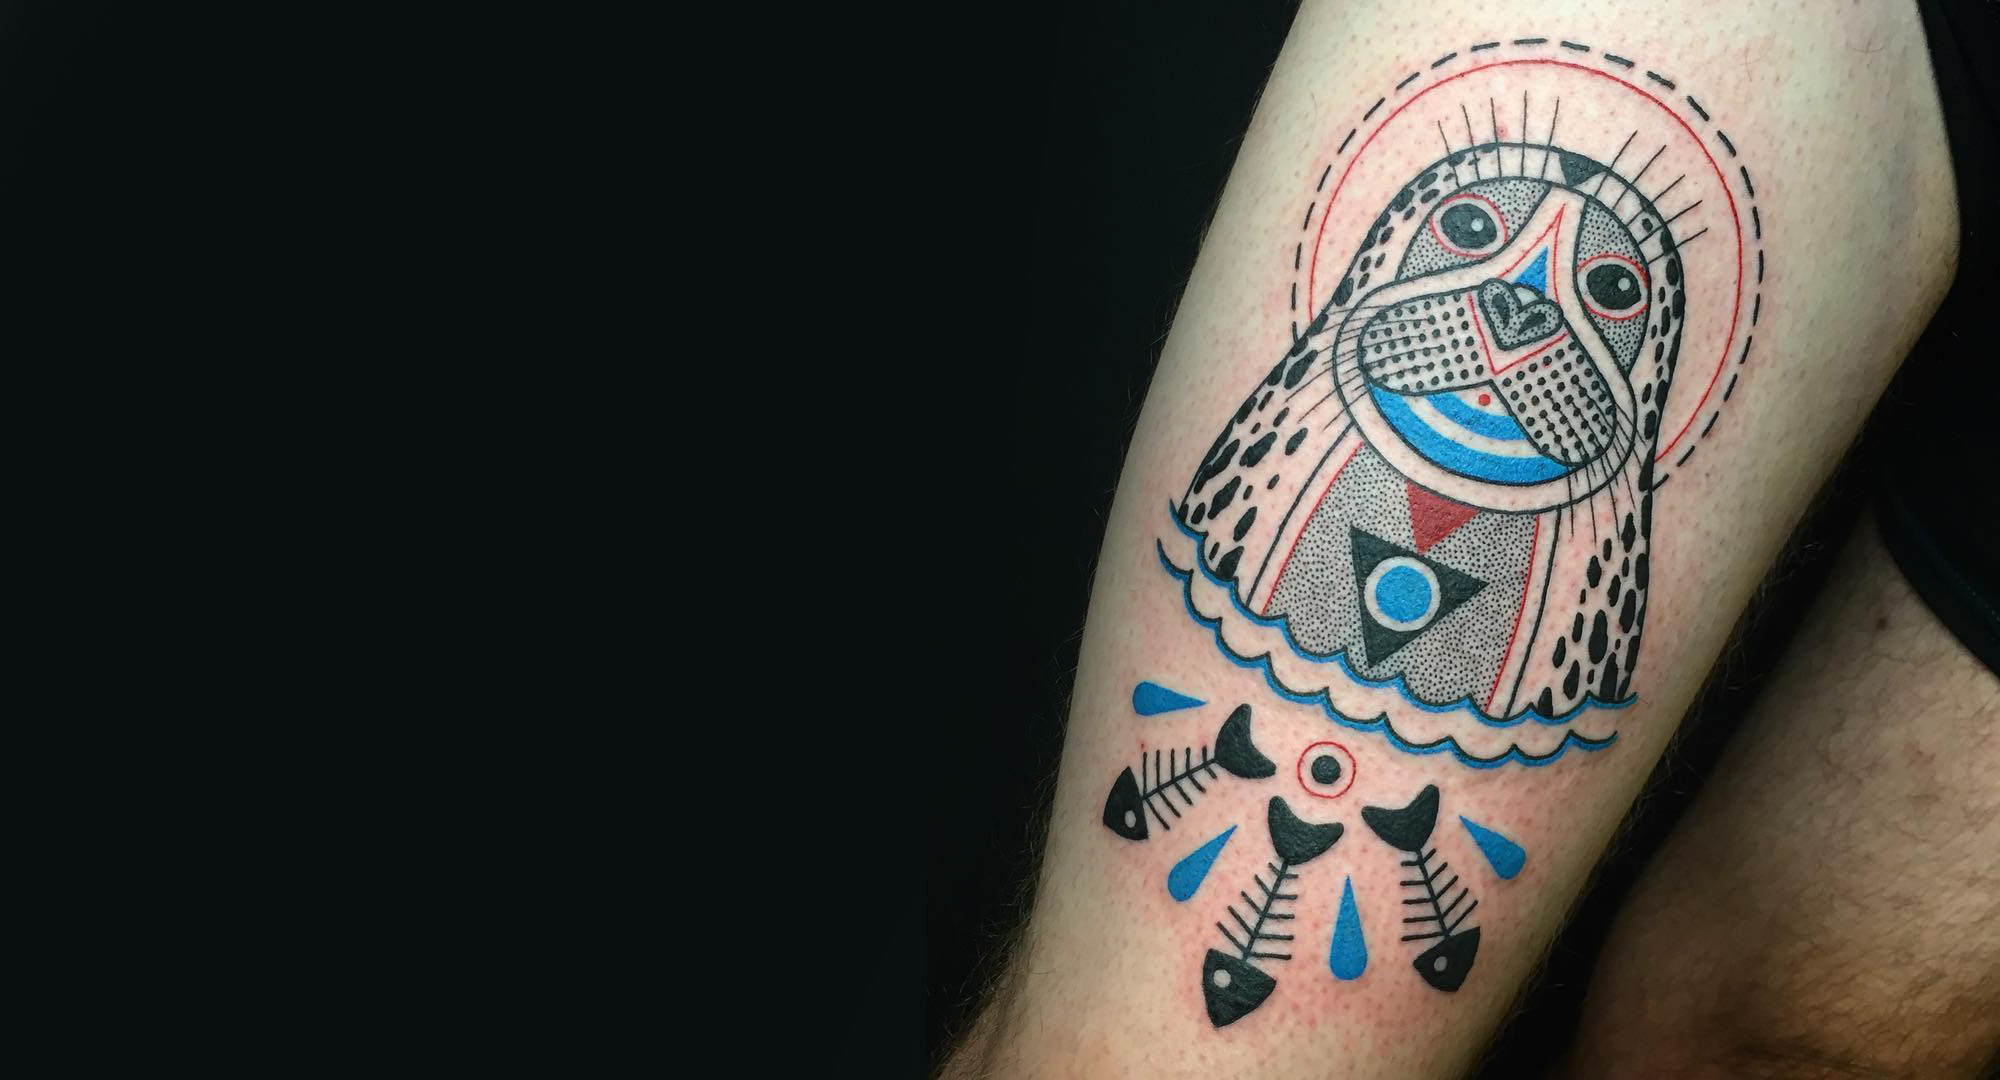 Winston the Whale Keeps It Weird by Inking Trippy Tattoo